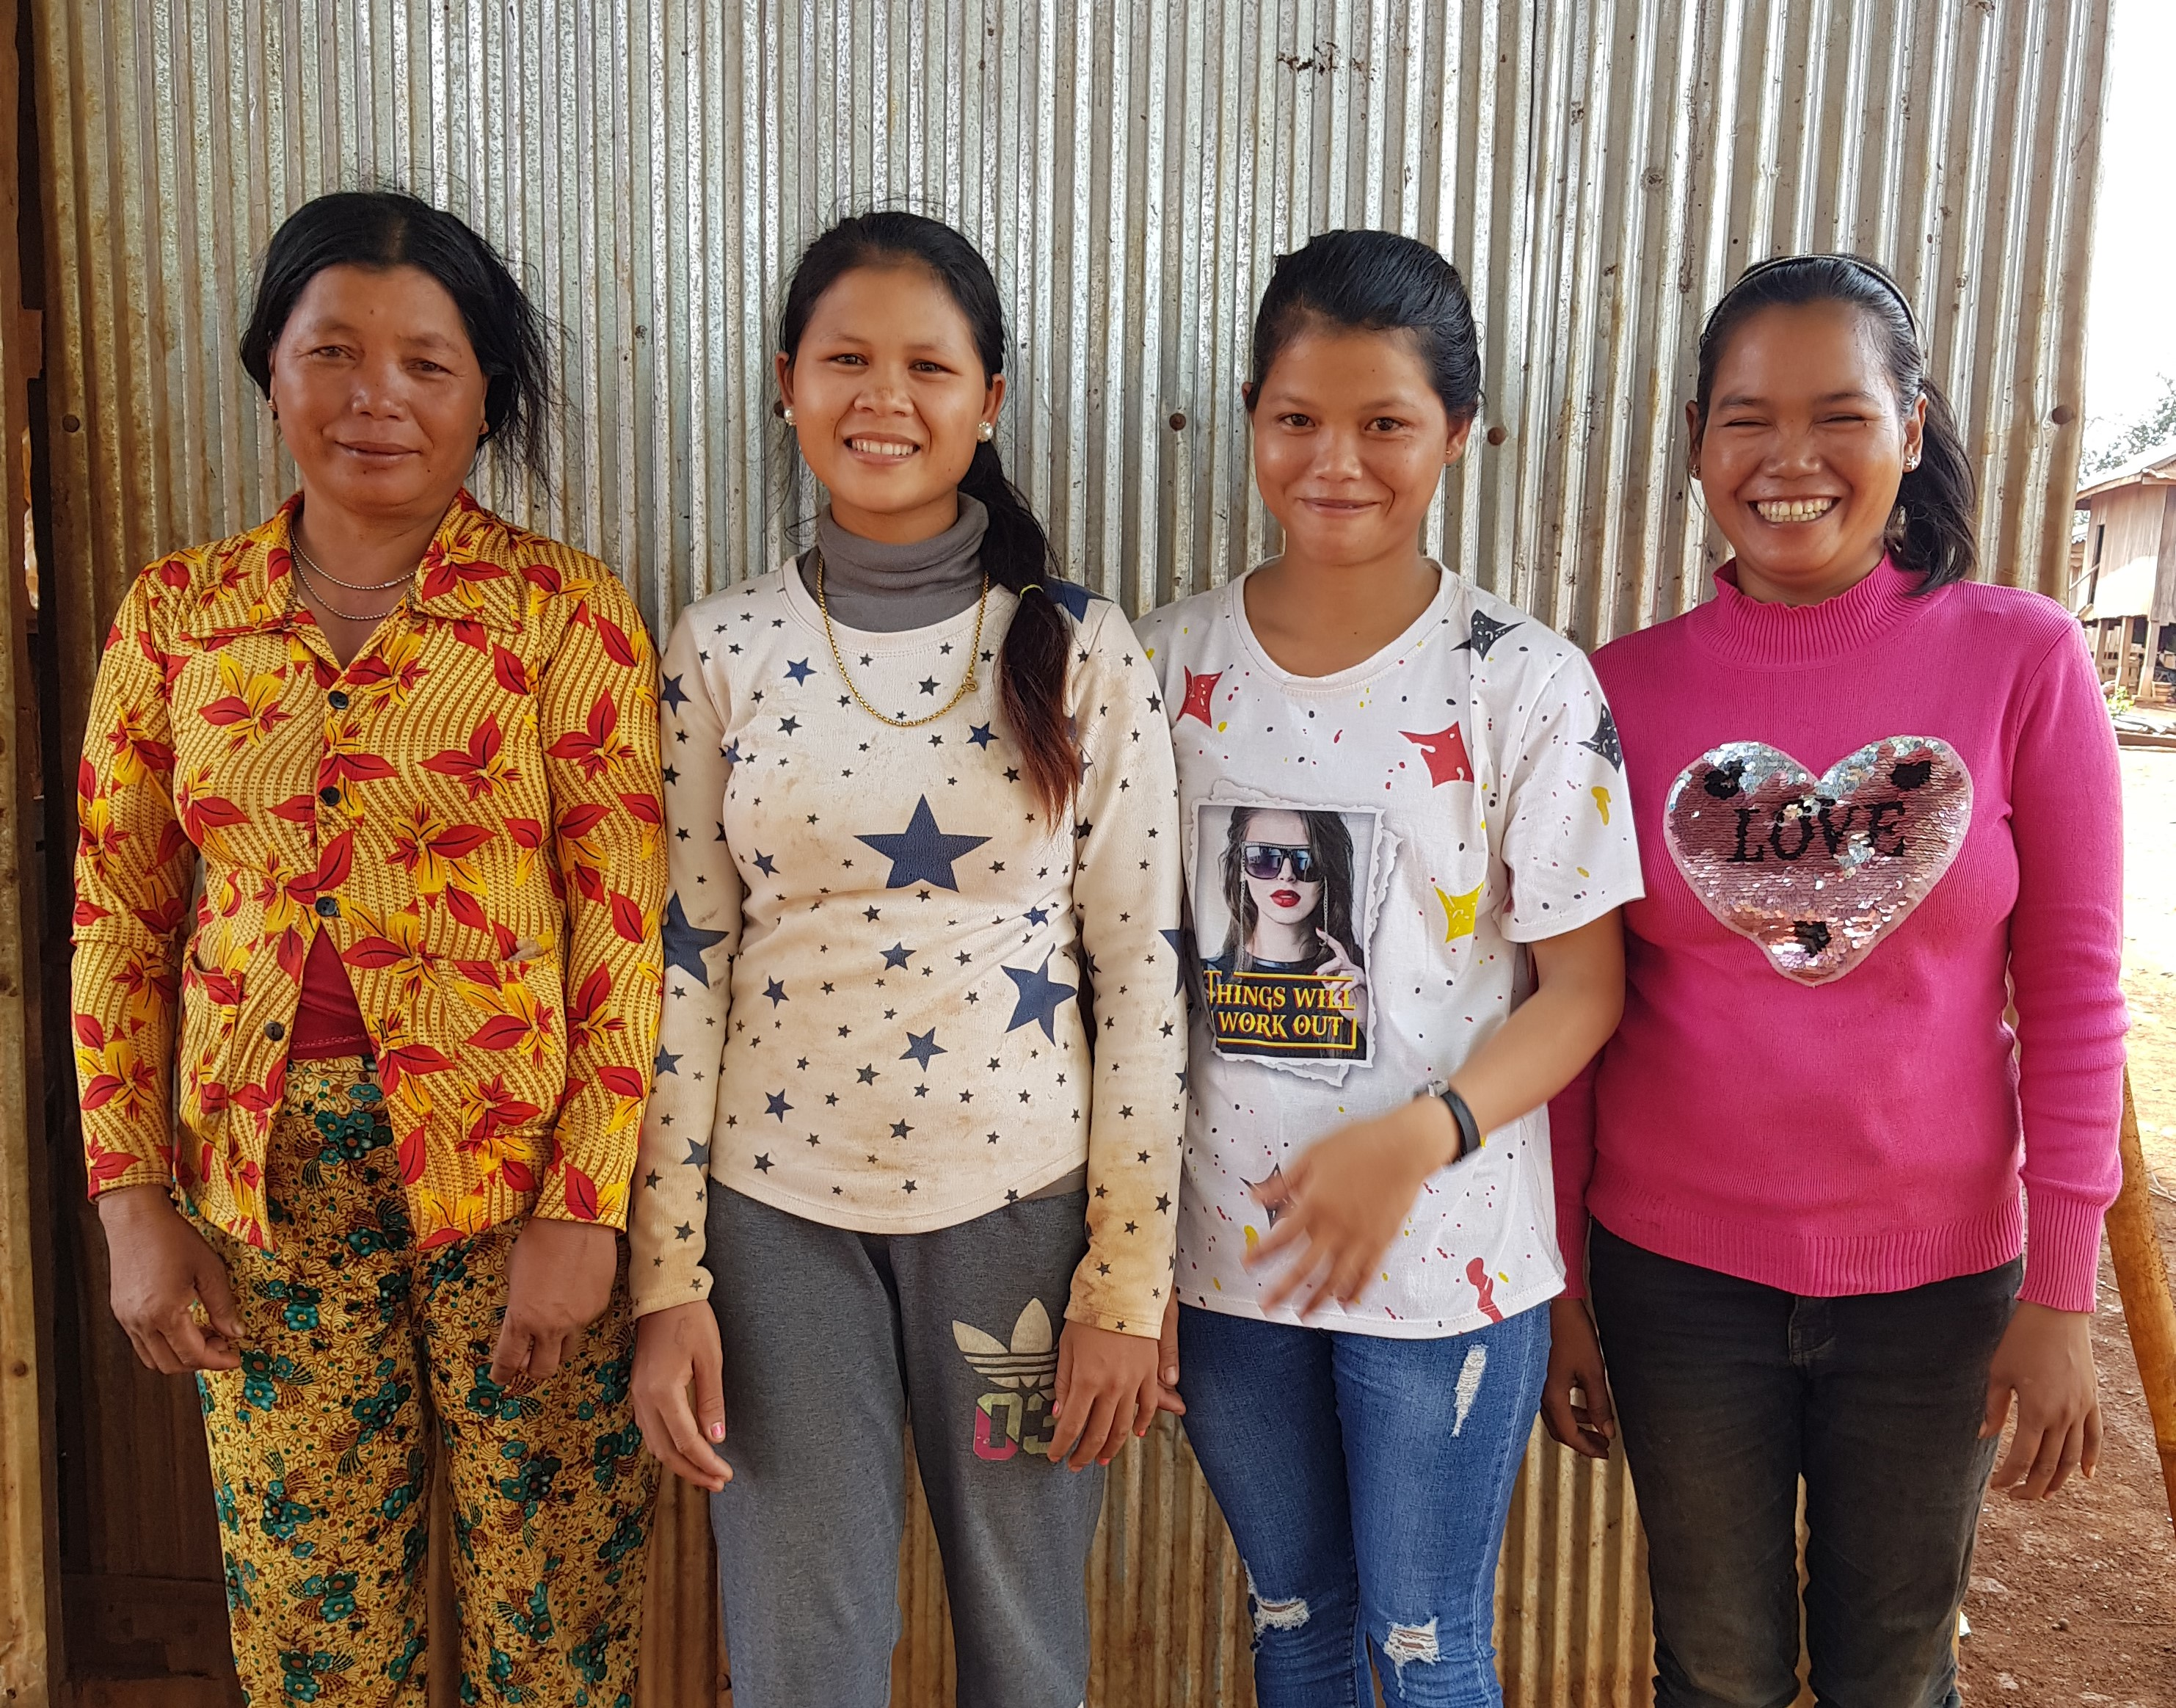 Building Women's Confidence in Cambodia